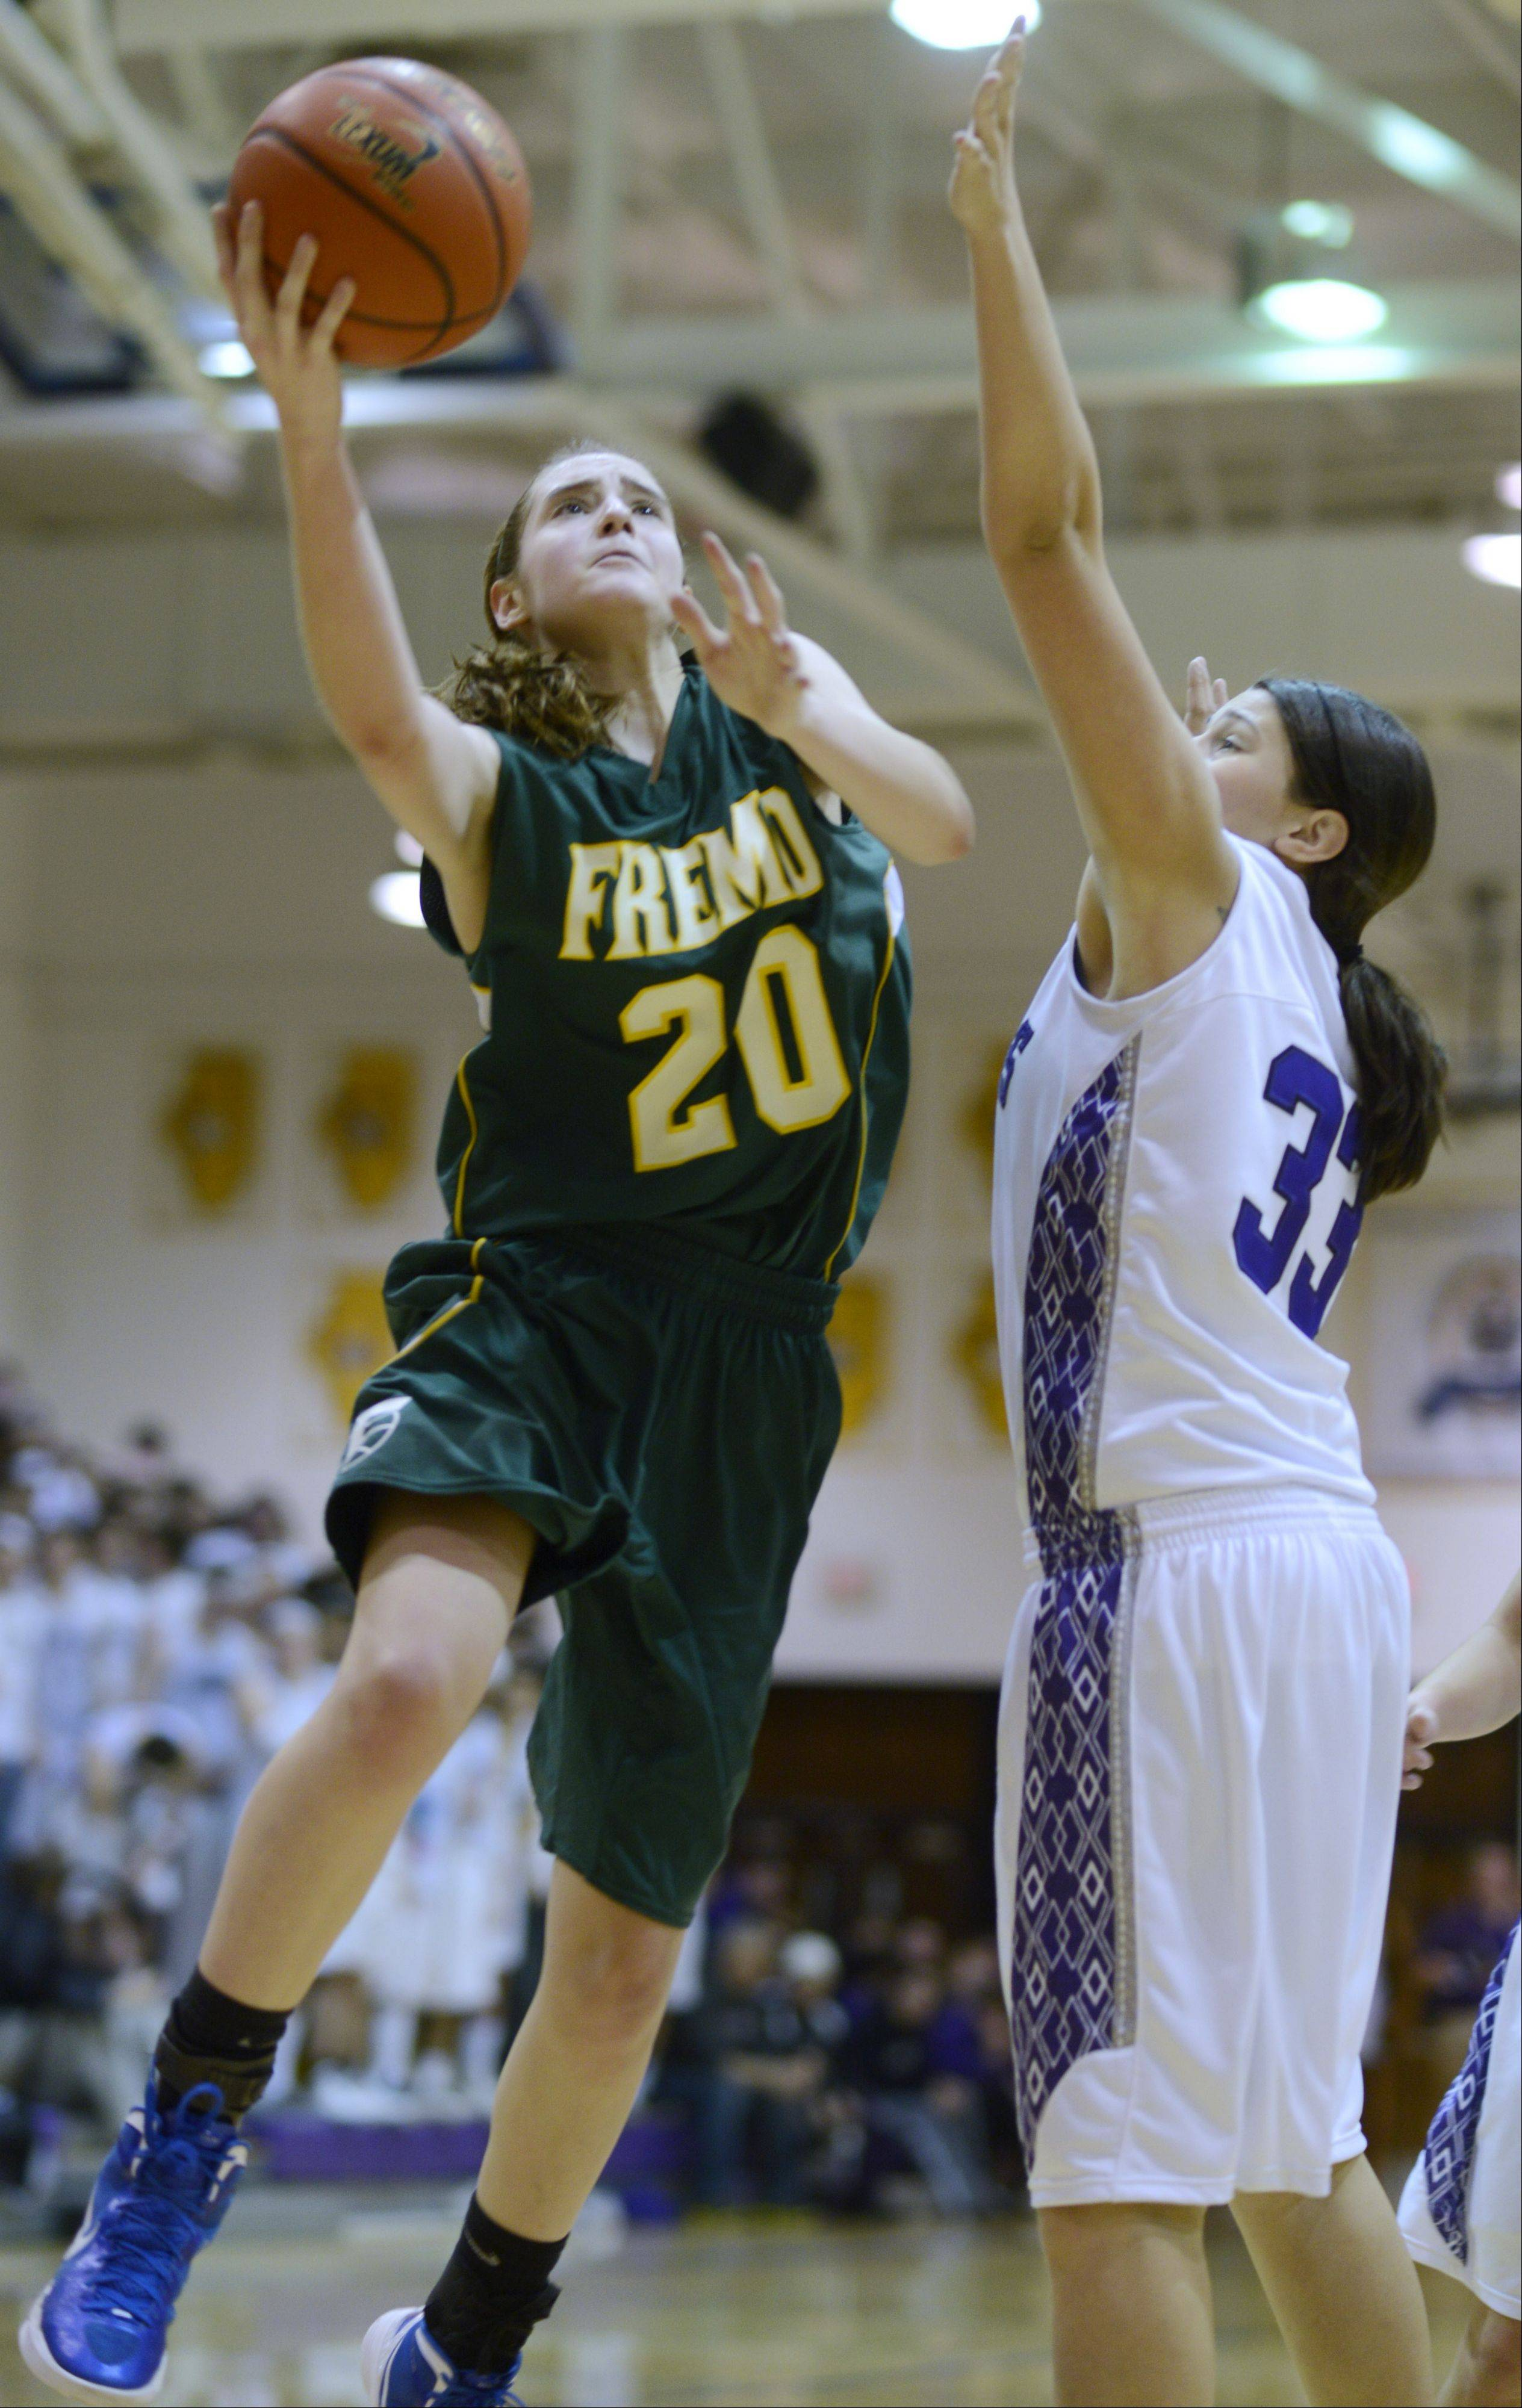 Fremd�s Haley Gorecki drives for a layup against Rolling Meadows defender Ashley Montanez during the Mid-Suburban league championship game Wednesday.